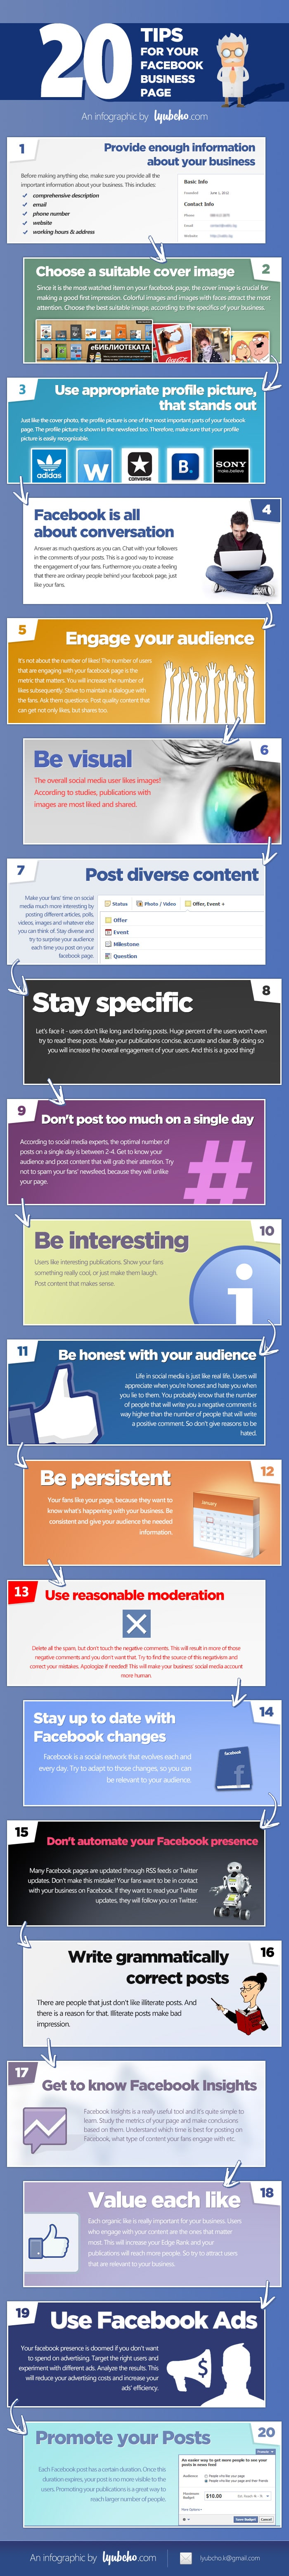 tips-facebook-business-page-infographic